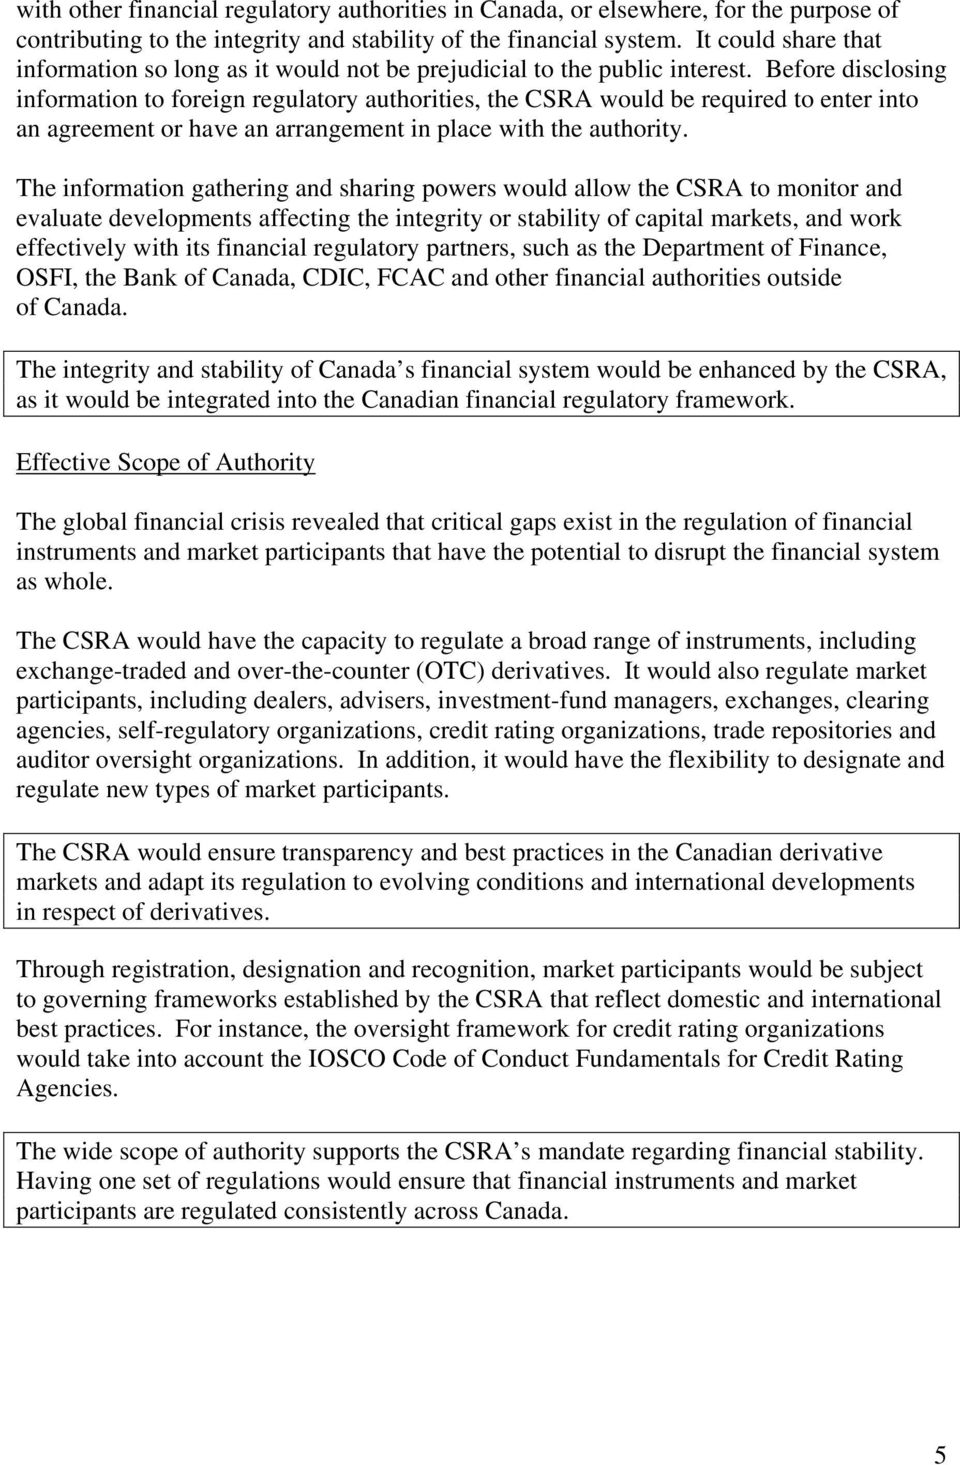 Before disclosing information to foreign regulatory authorities, the CSRA would be required to enter into an agreement or have an arrangement in place with the authority.